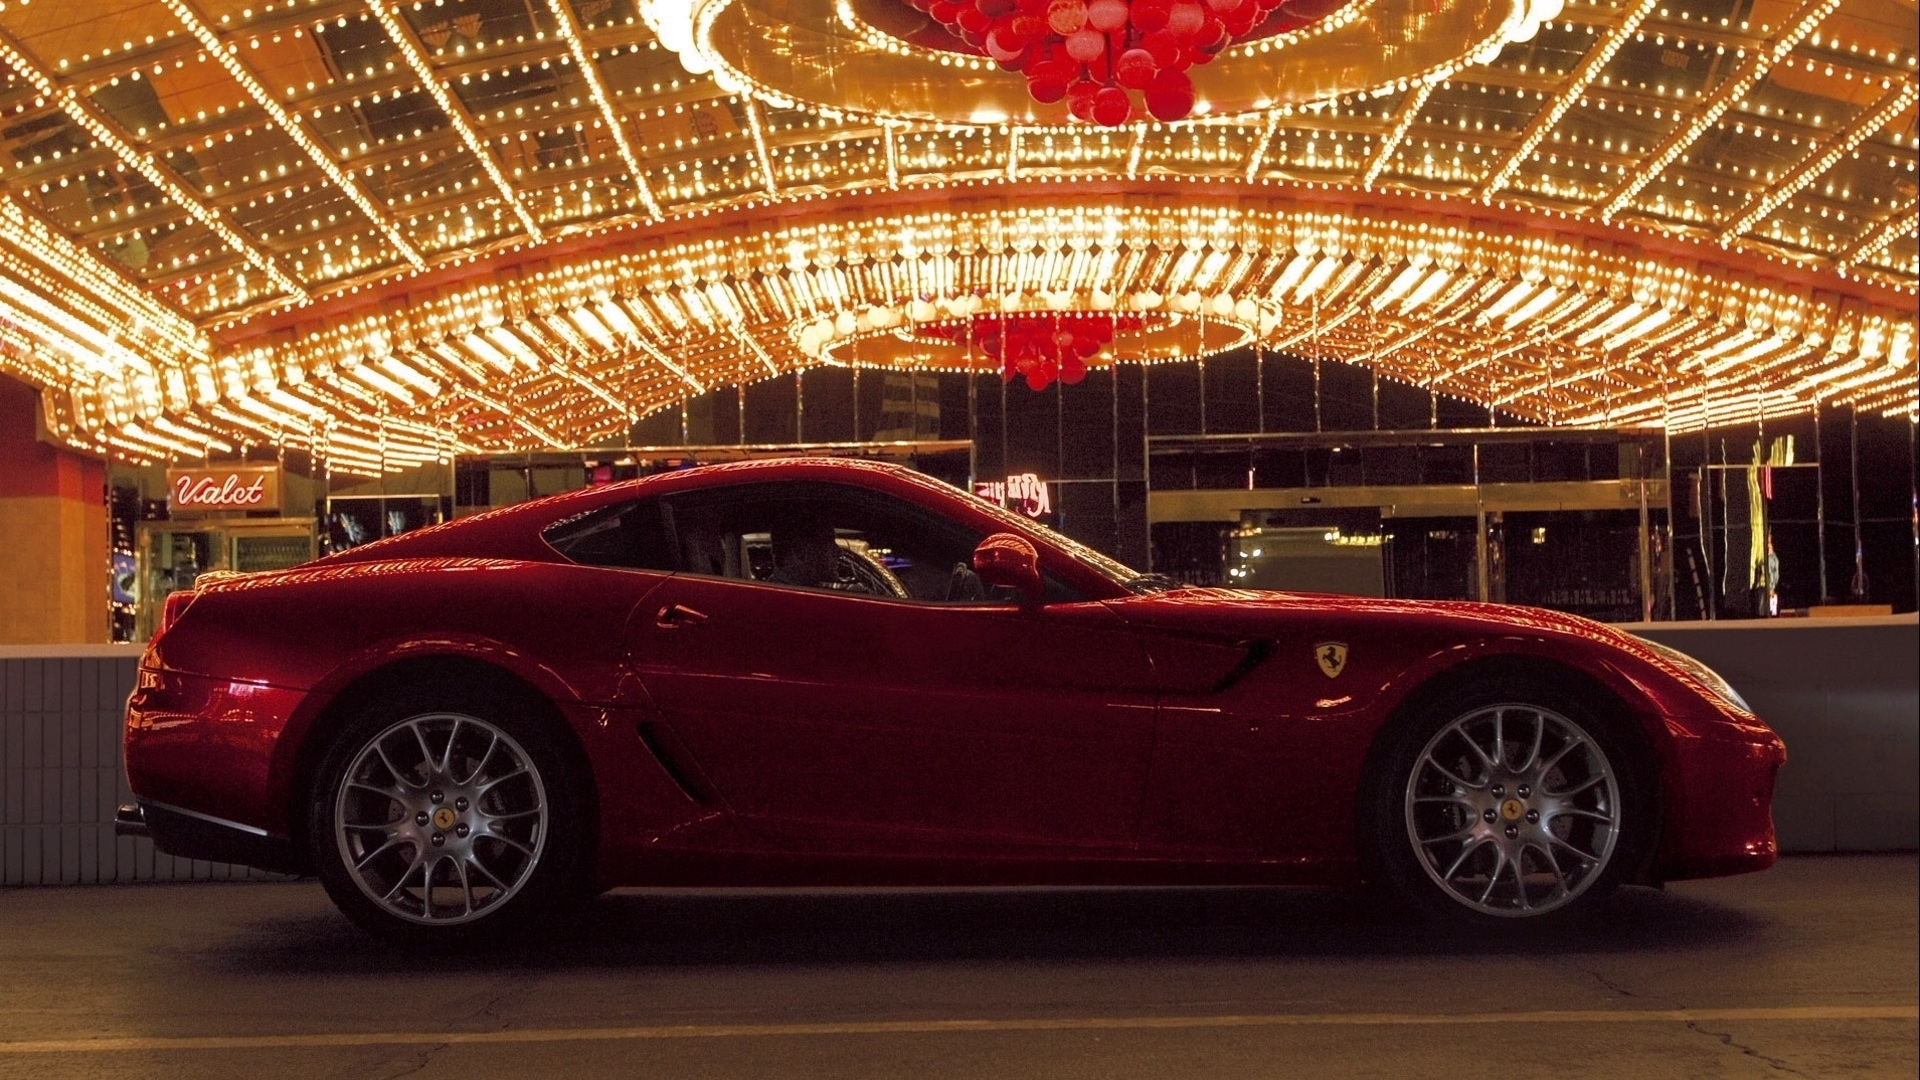 47956 download wallpaper Transport, Auto, Ferrari screensavers and pictures for free